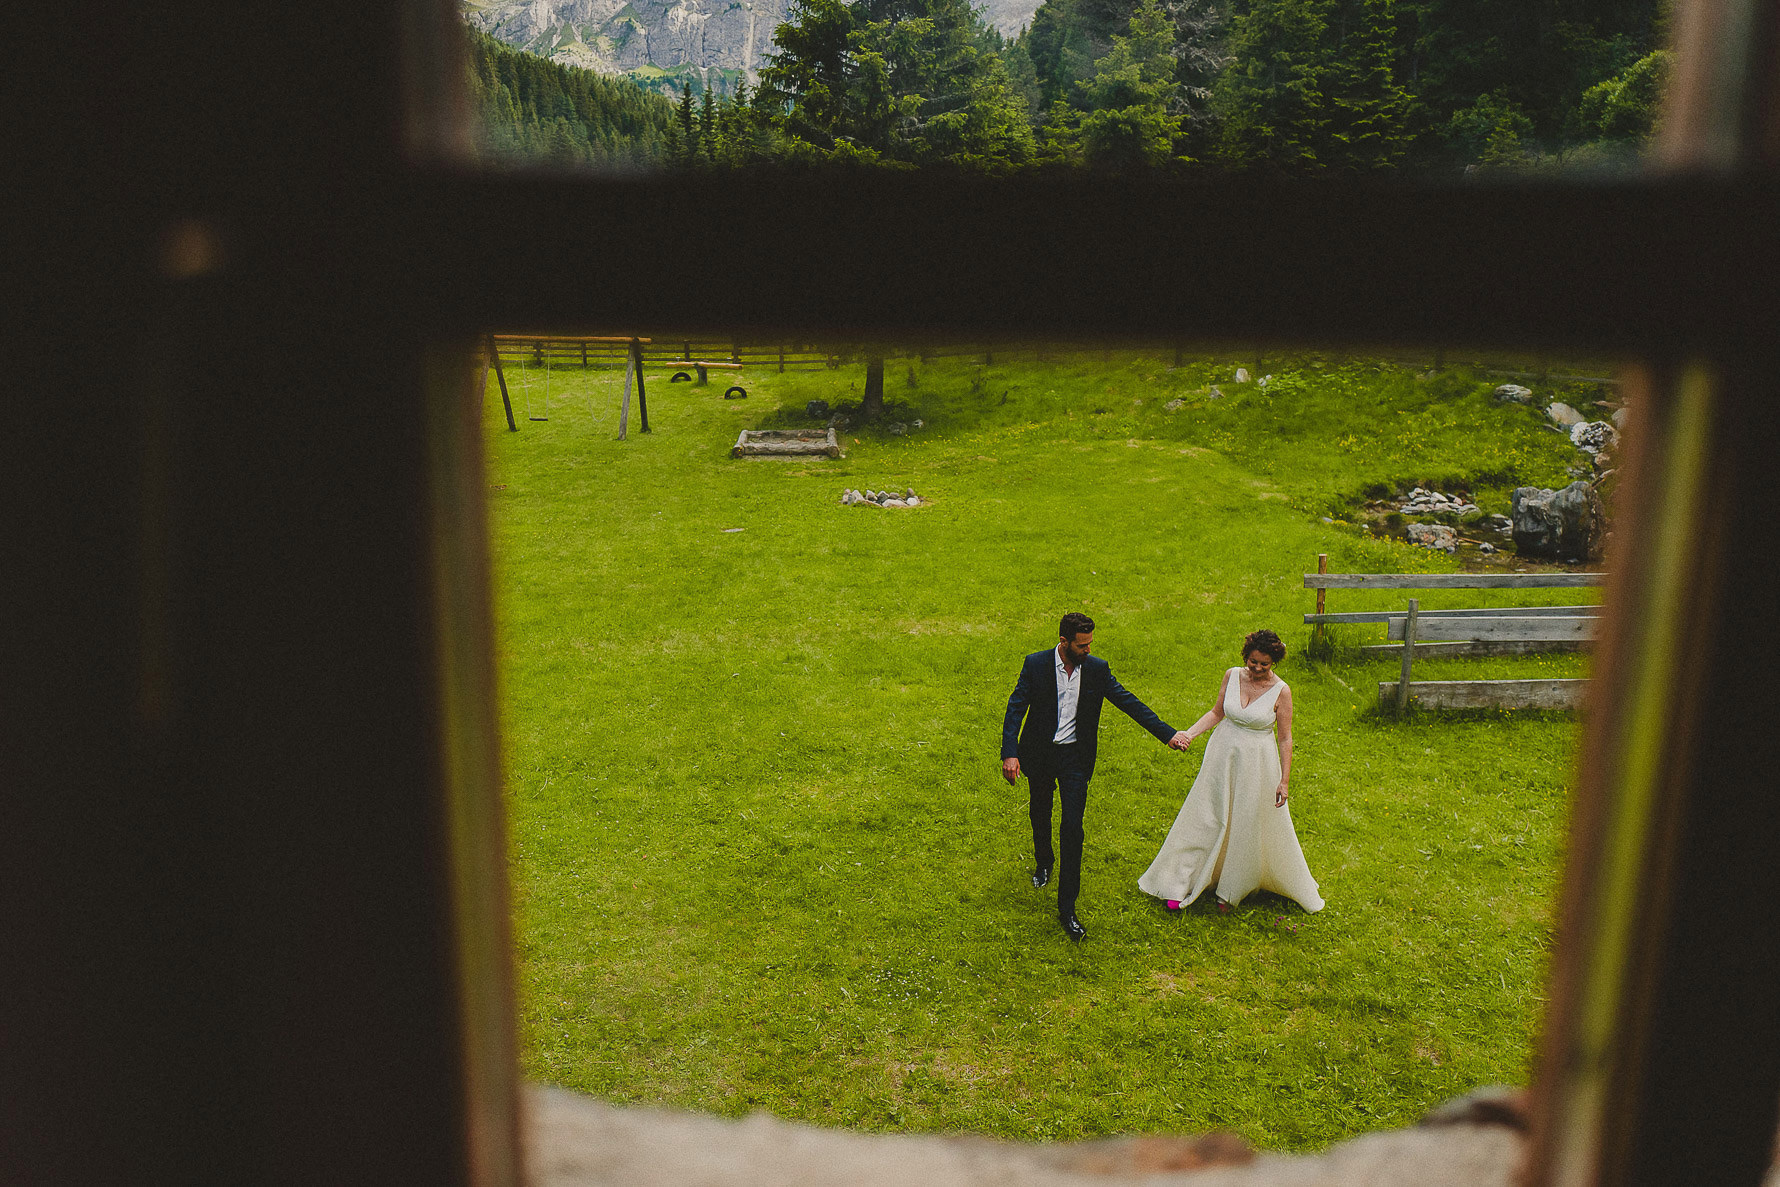 wedding photographer in bolzano alto adige